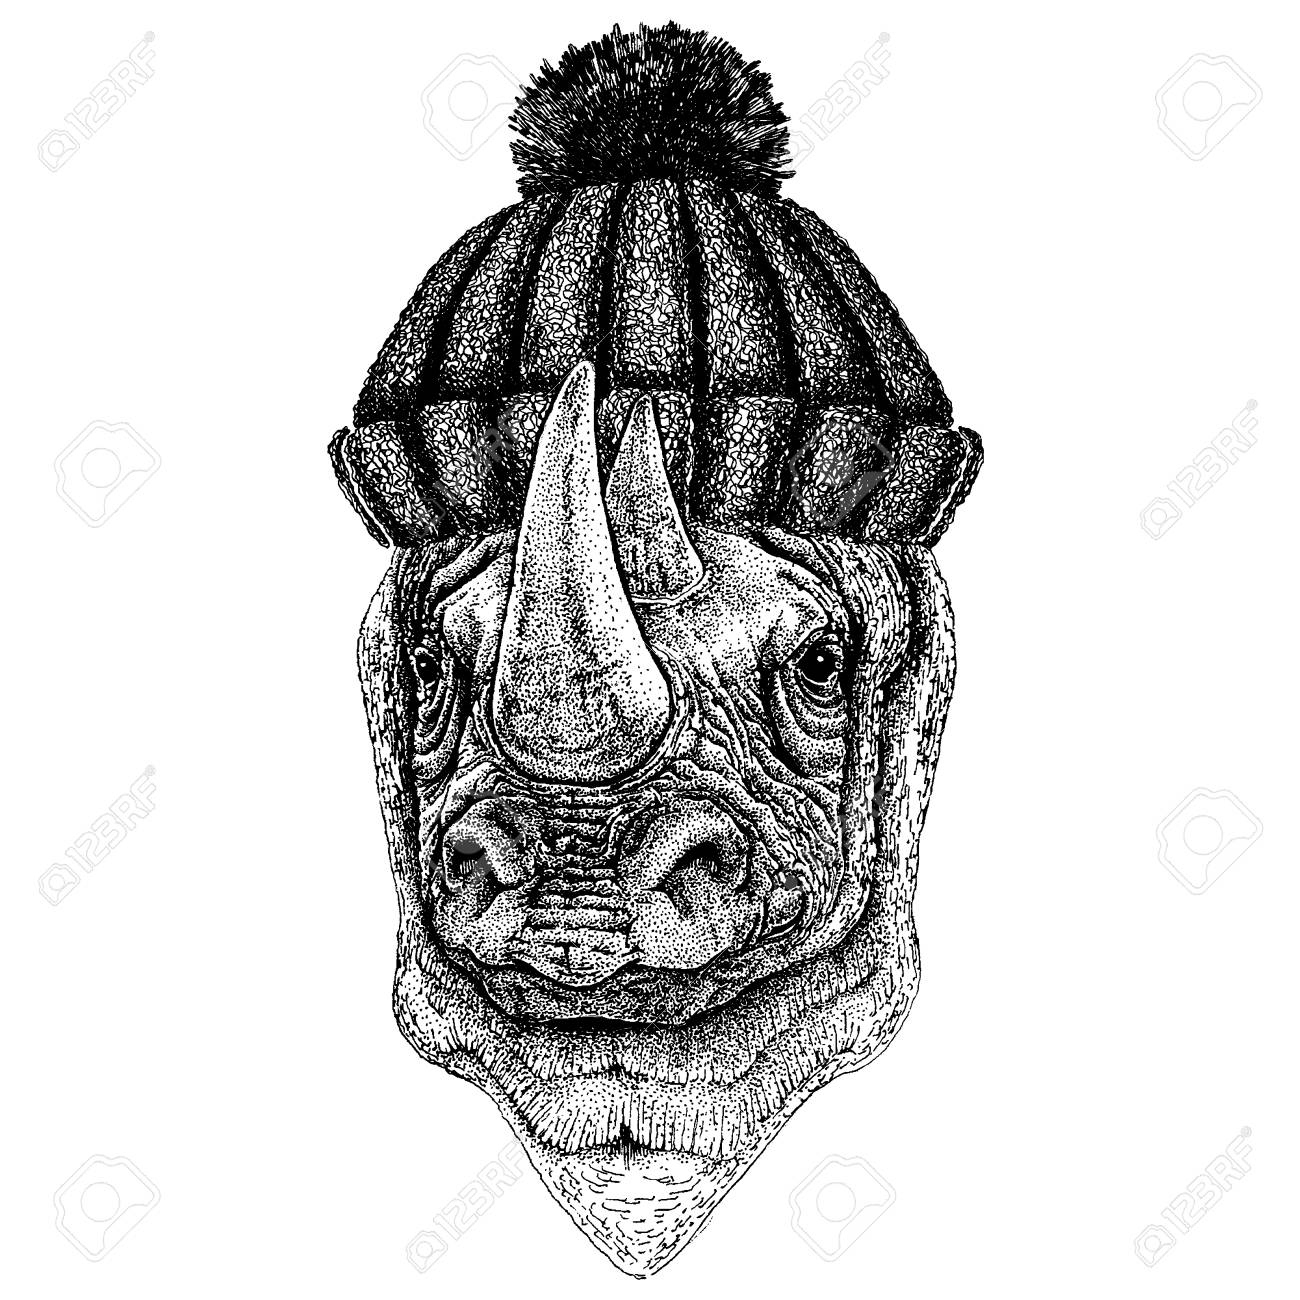 rhinoceros rhino hand drawn